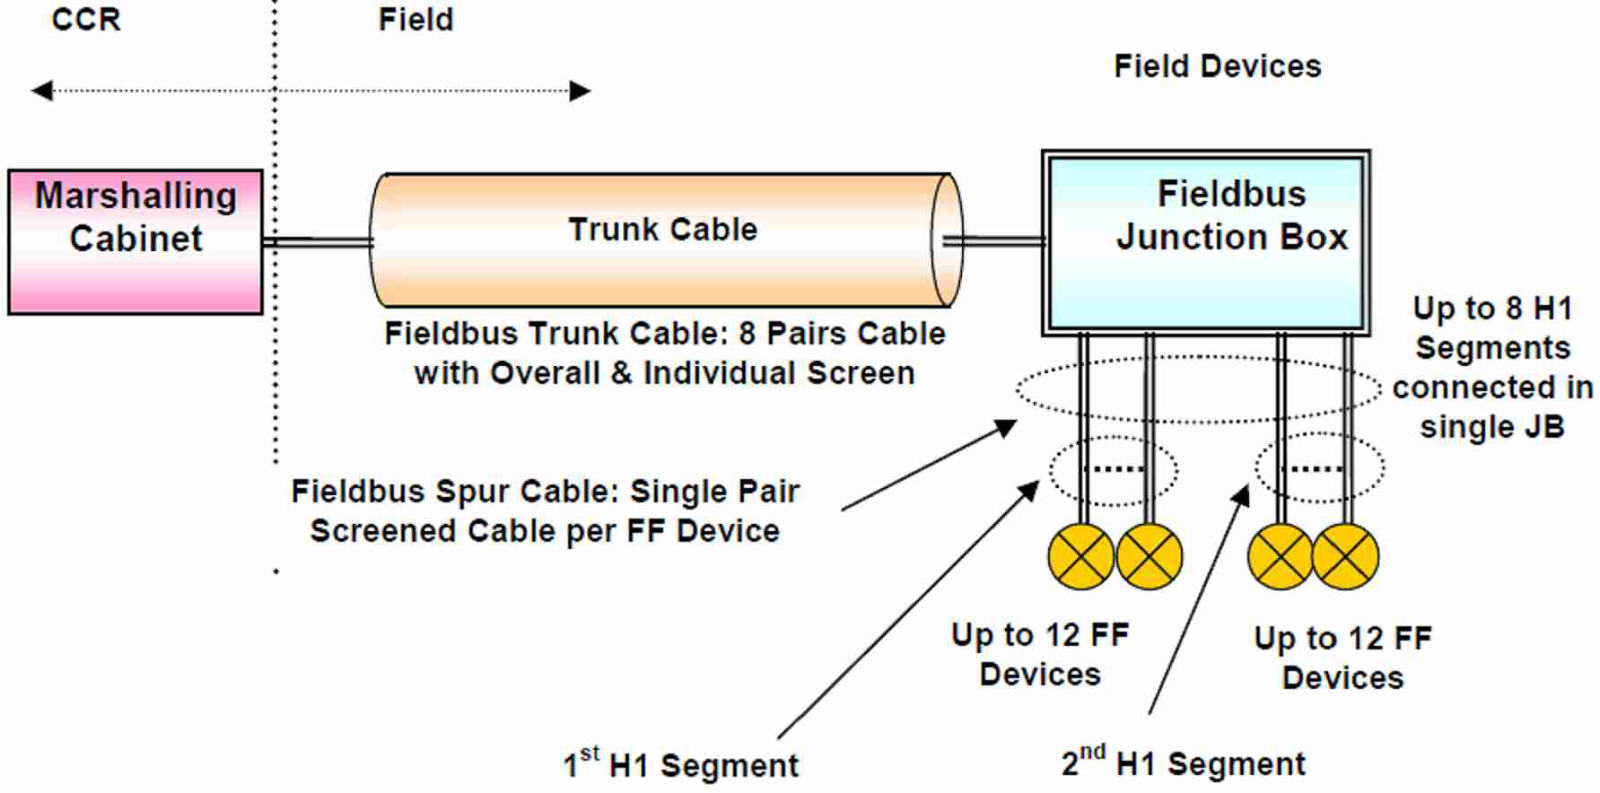 foundation fieldbus segment wiring design requirements pak tech point rh paktechpoint com foundation fieldbus wiring and installation foundation fieldbus wiring and installation application guide